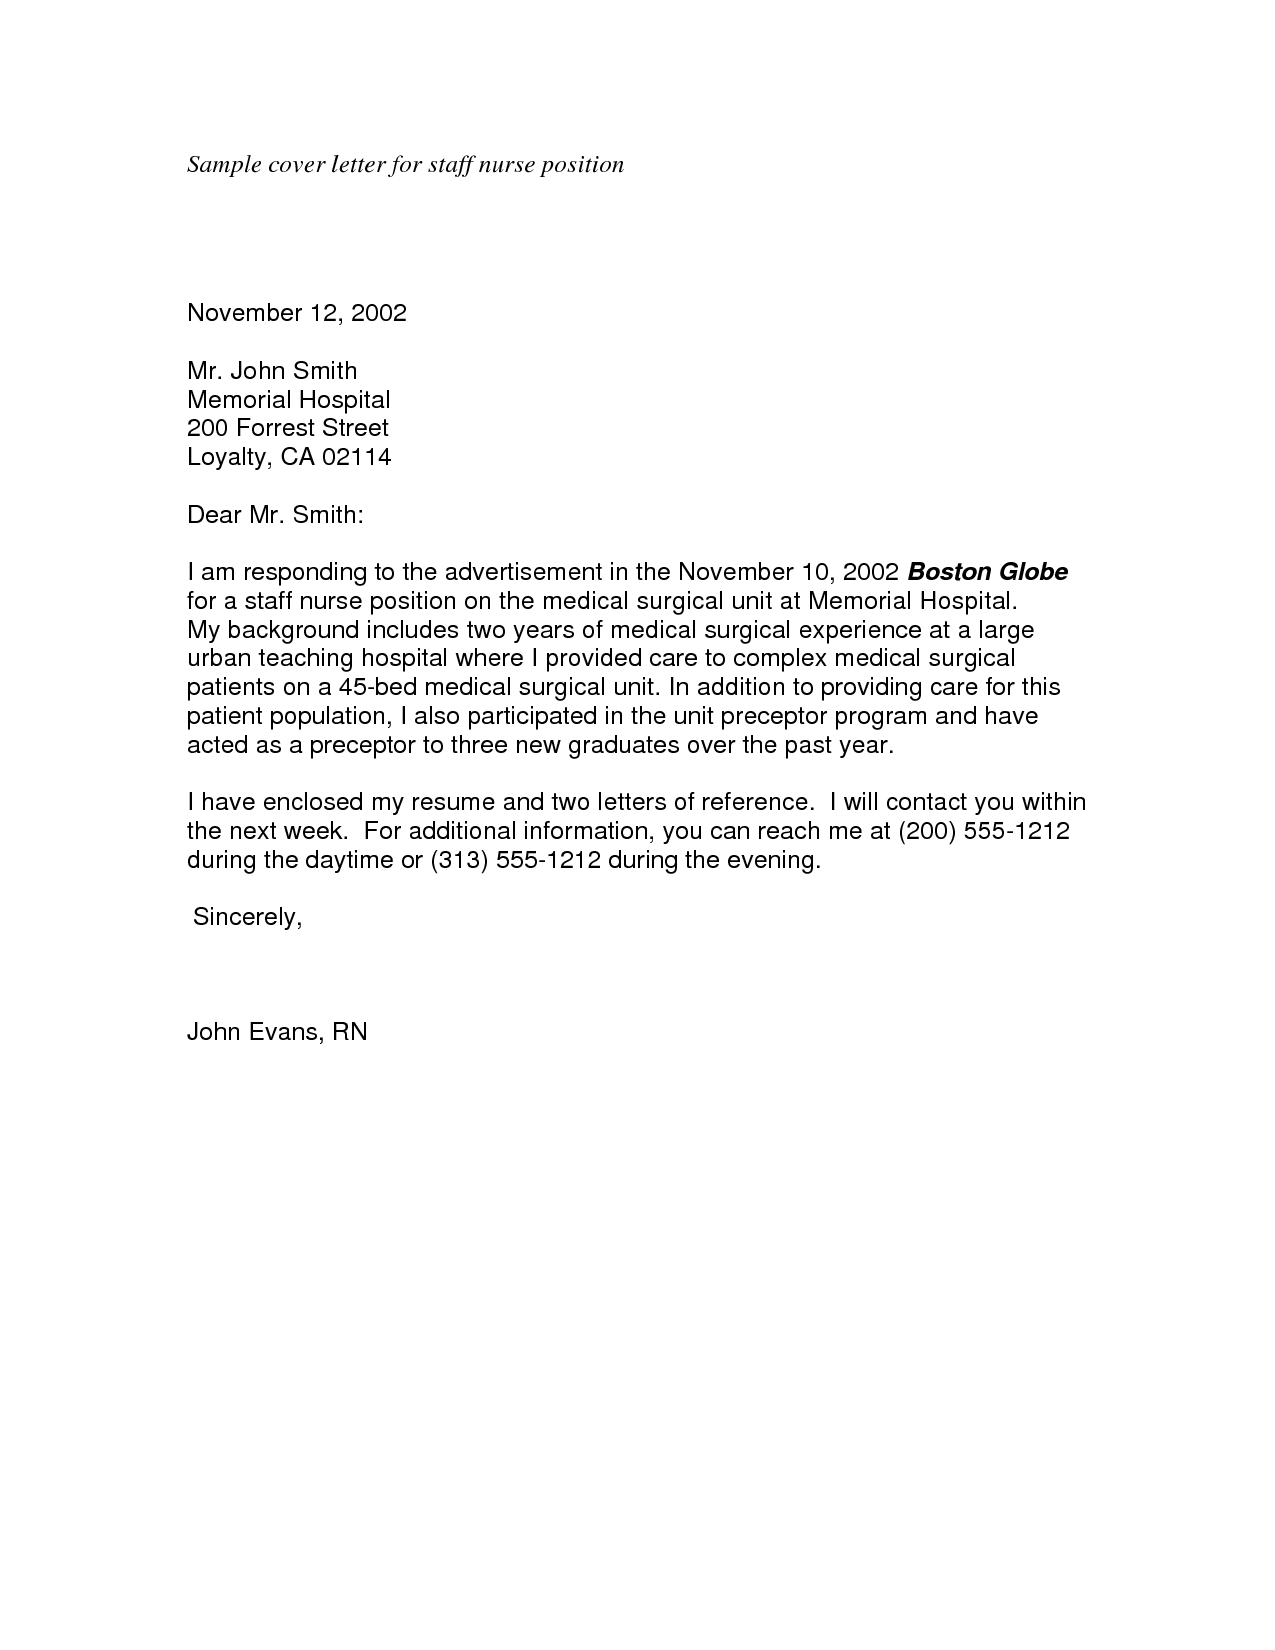 job cover letter sample letter samples x kb png sample formal ...